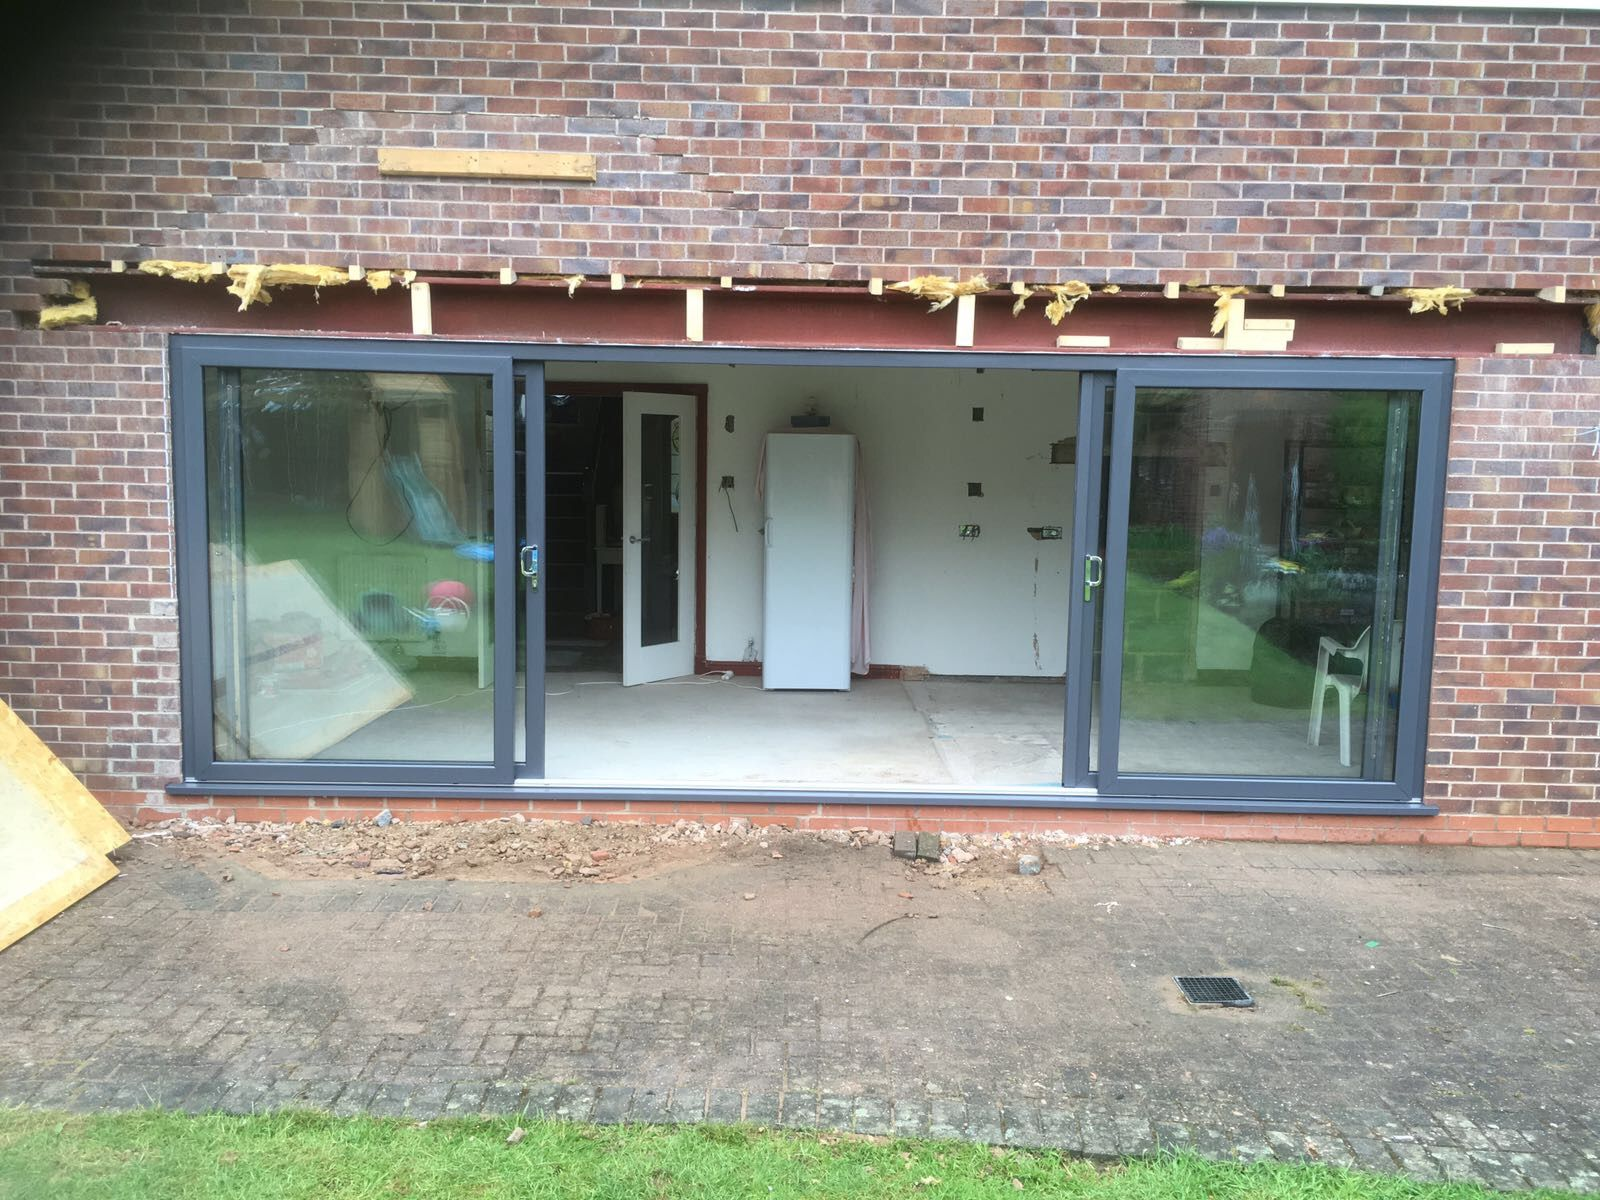 Kommerling Premiline Secured By Design 4 Pane Sliding Patio Doors In Slate Grey Ral 7015